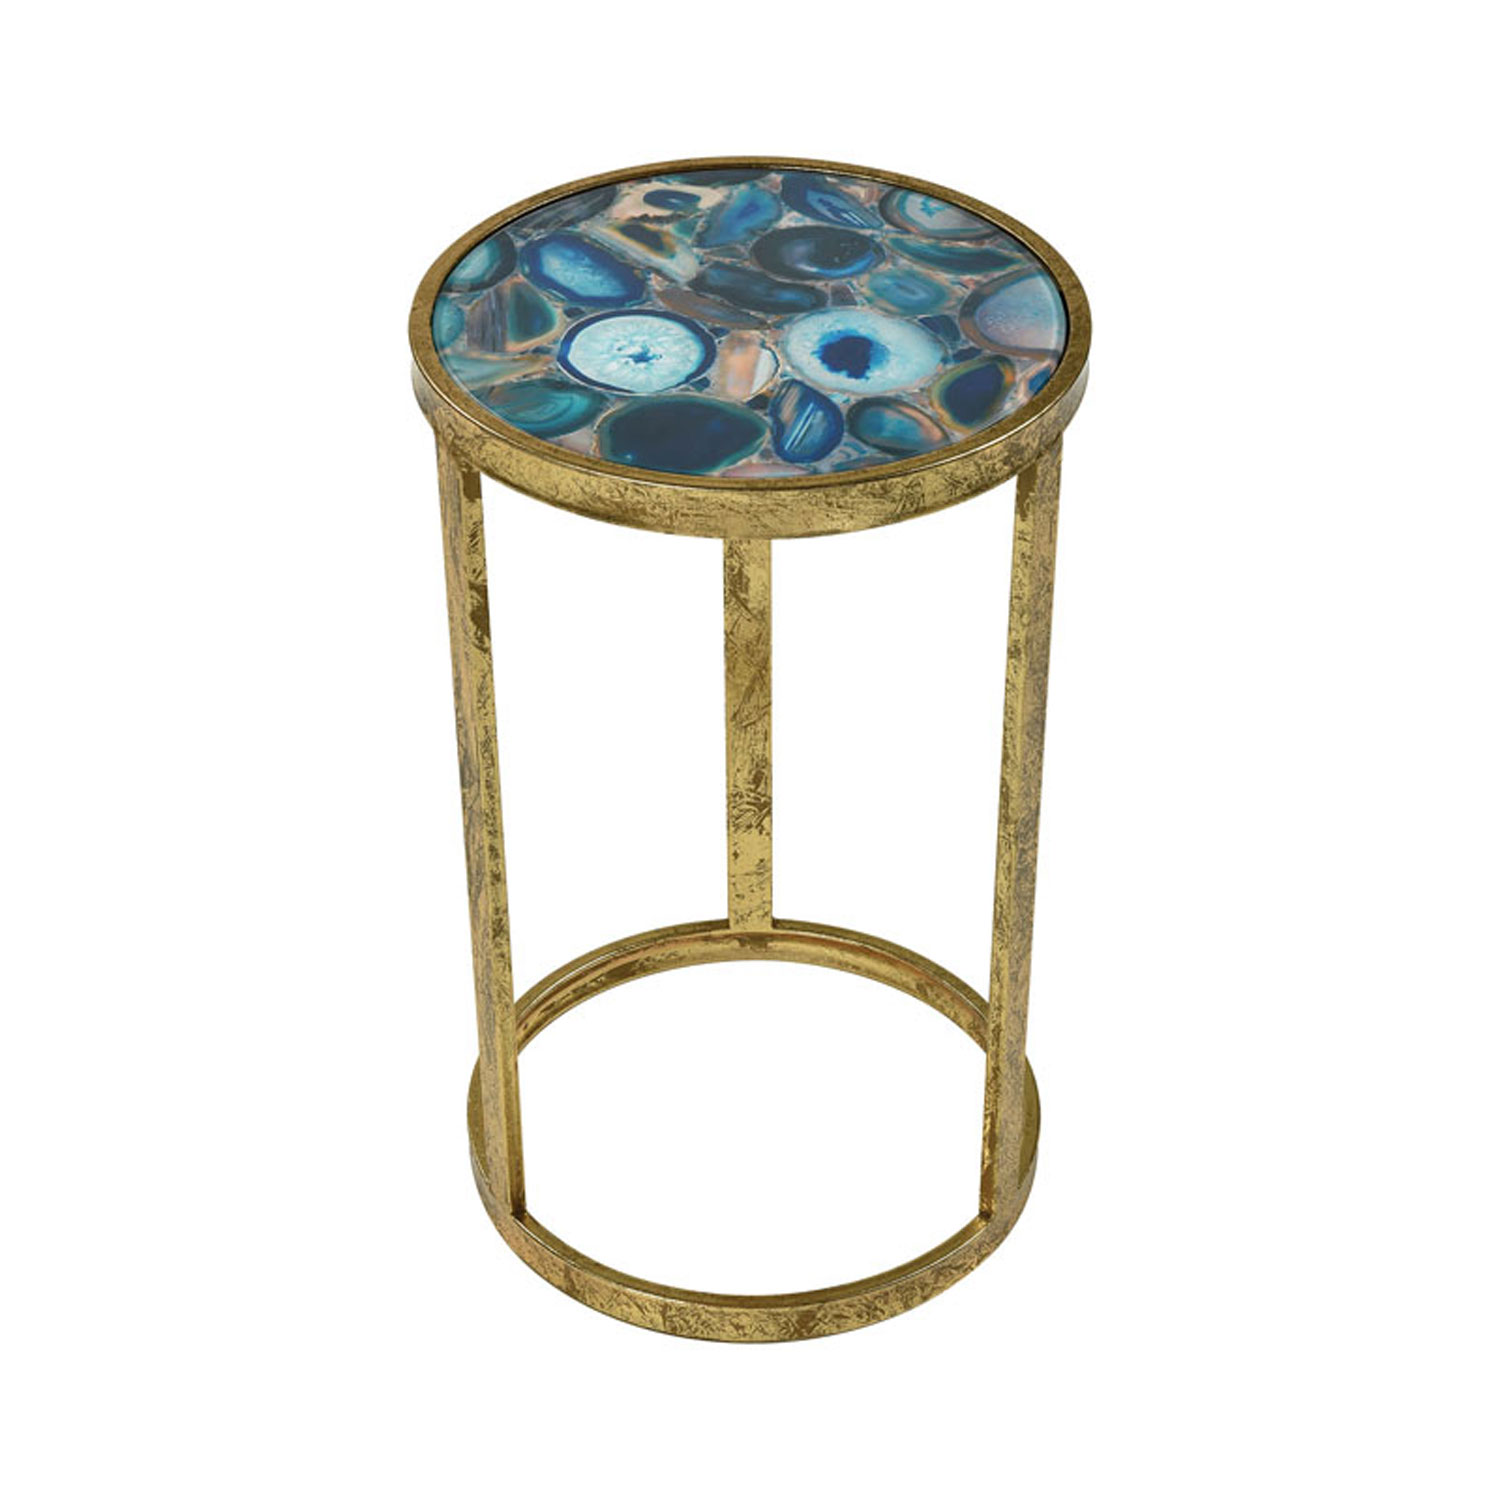 sterling industries krete blue agate accent table bellacor metal hover zoom counter height pub light wood end tables patio tiles mini lamp dark bedroom furniture homepop sofa